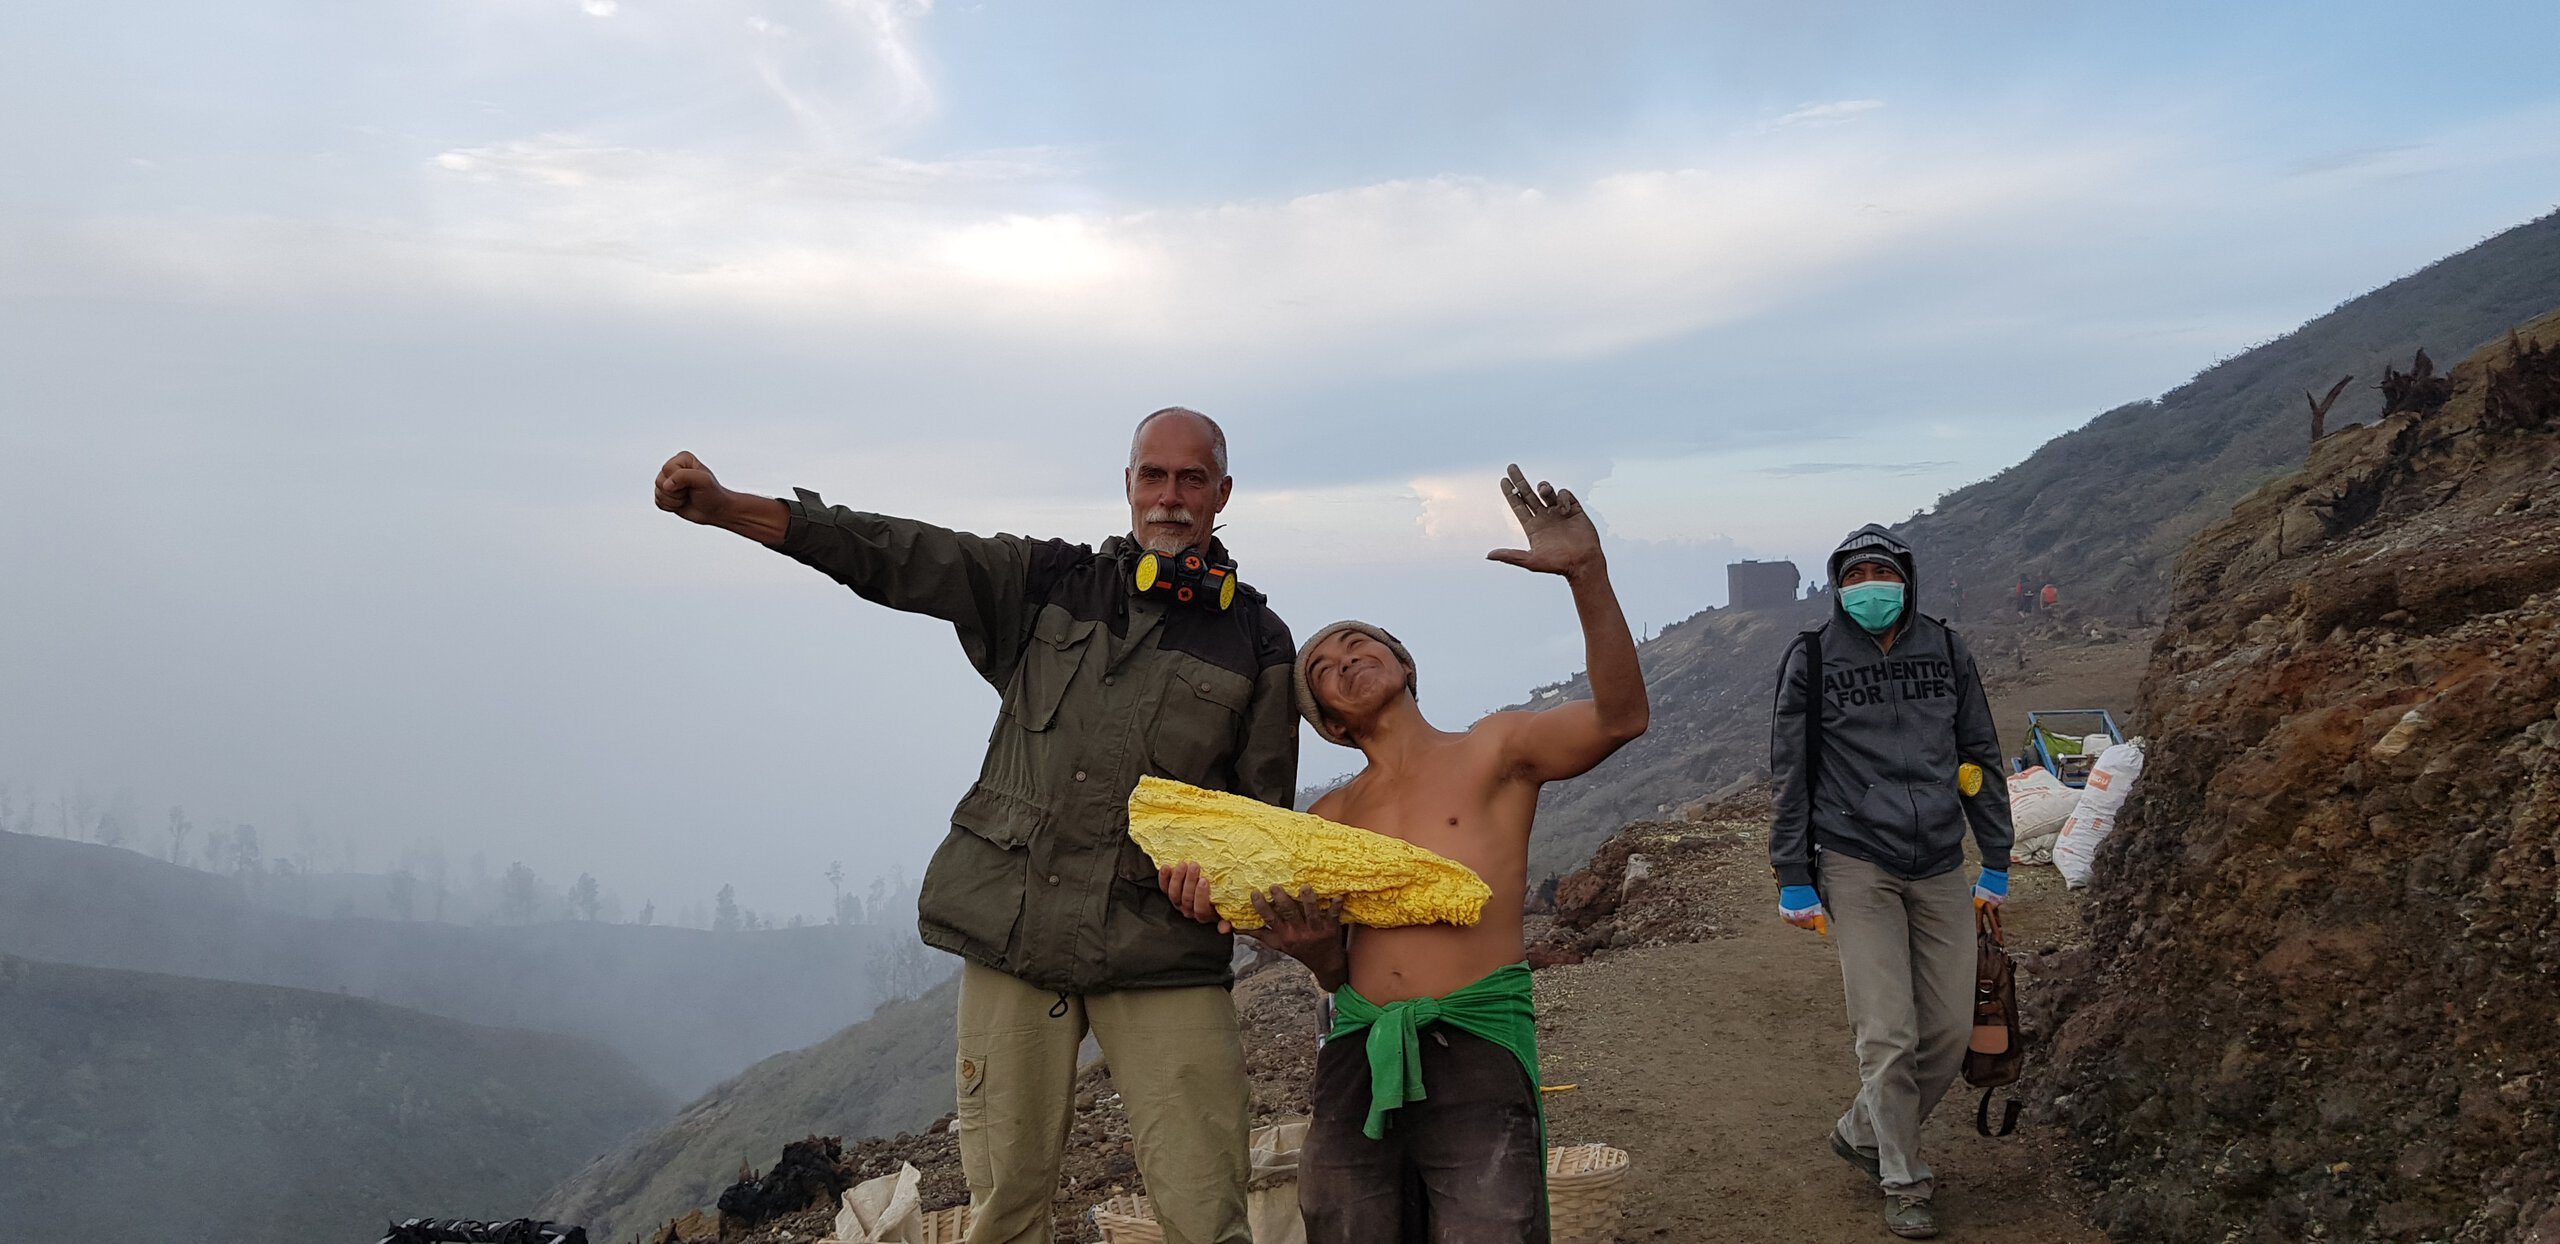 A sulphur miner with a chunk of sulphur at Ijen volcano, posing with the author for a silly selfie.